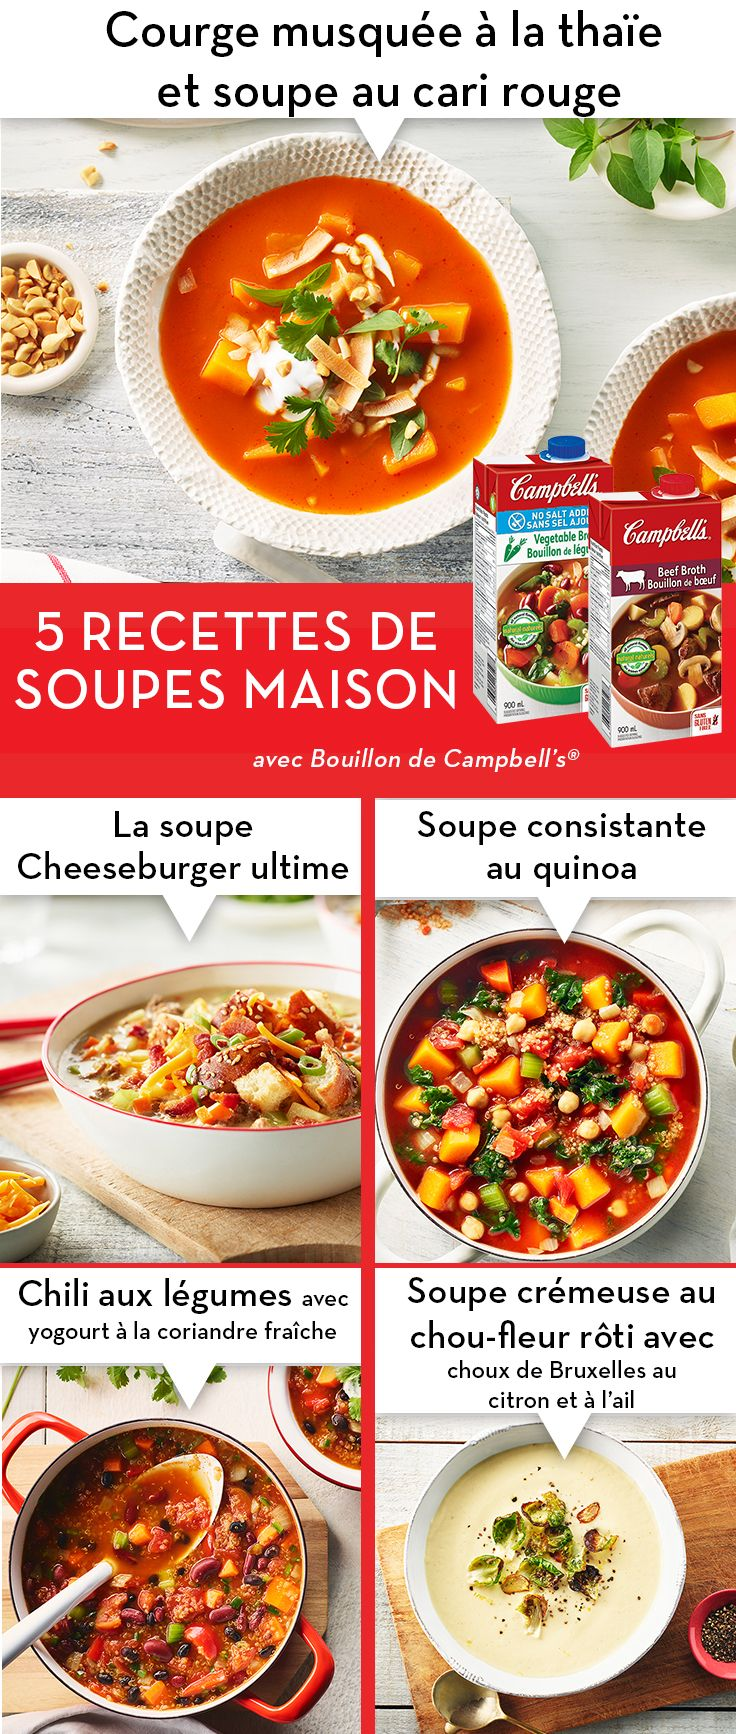 Pin By Campbell Canada On Cuisinez Avec Campbell S Soup Recipes Homemade Soup Cooking Recipes